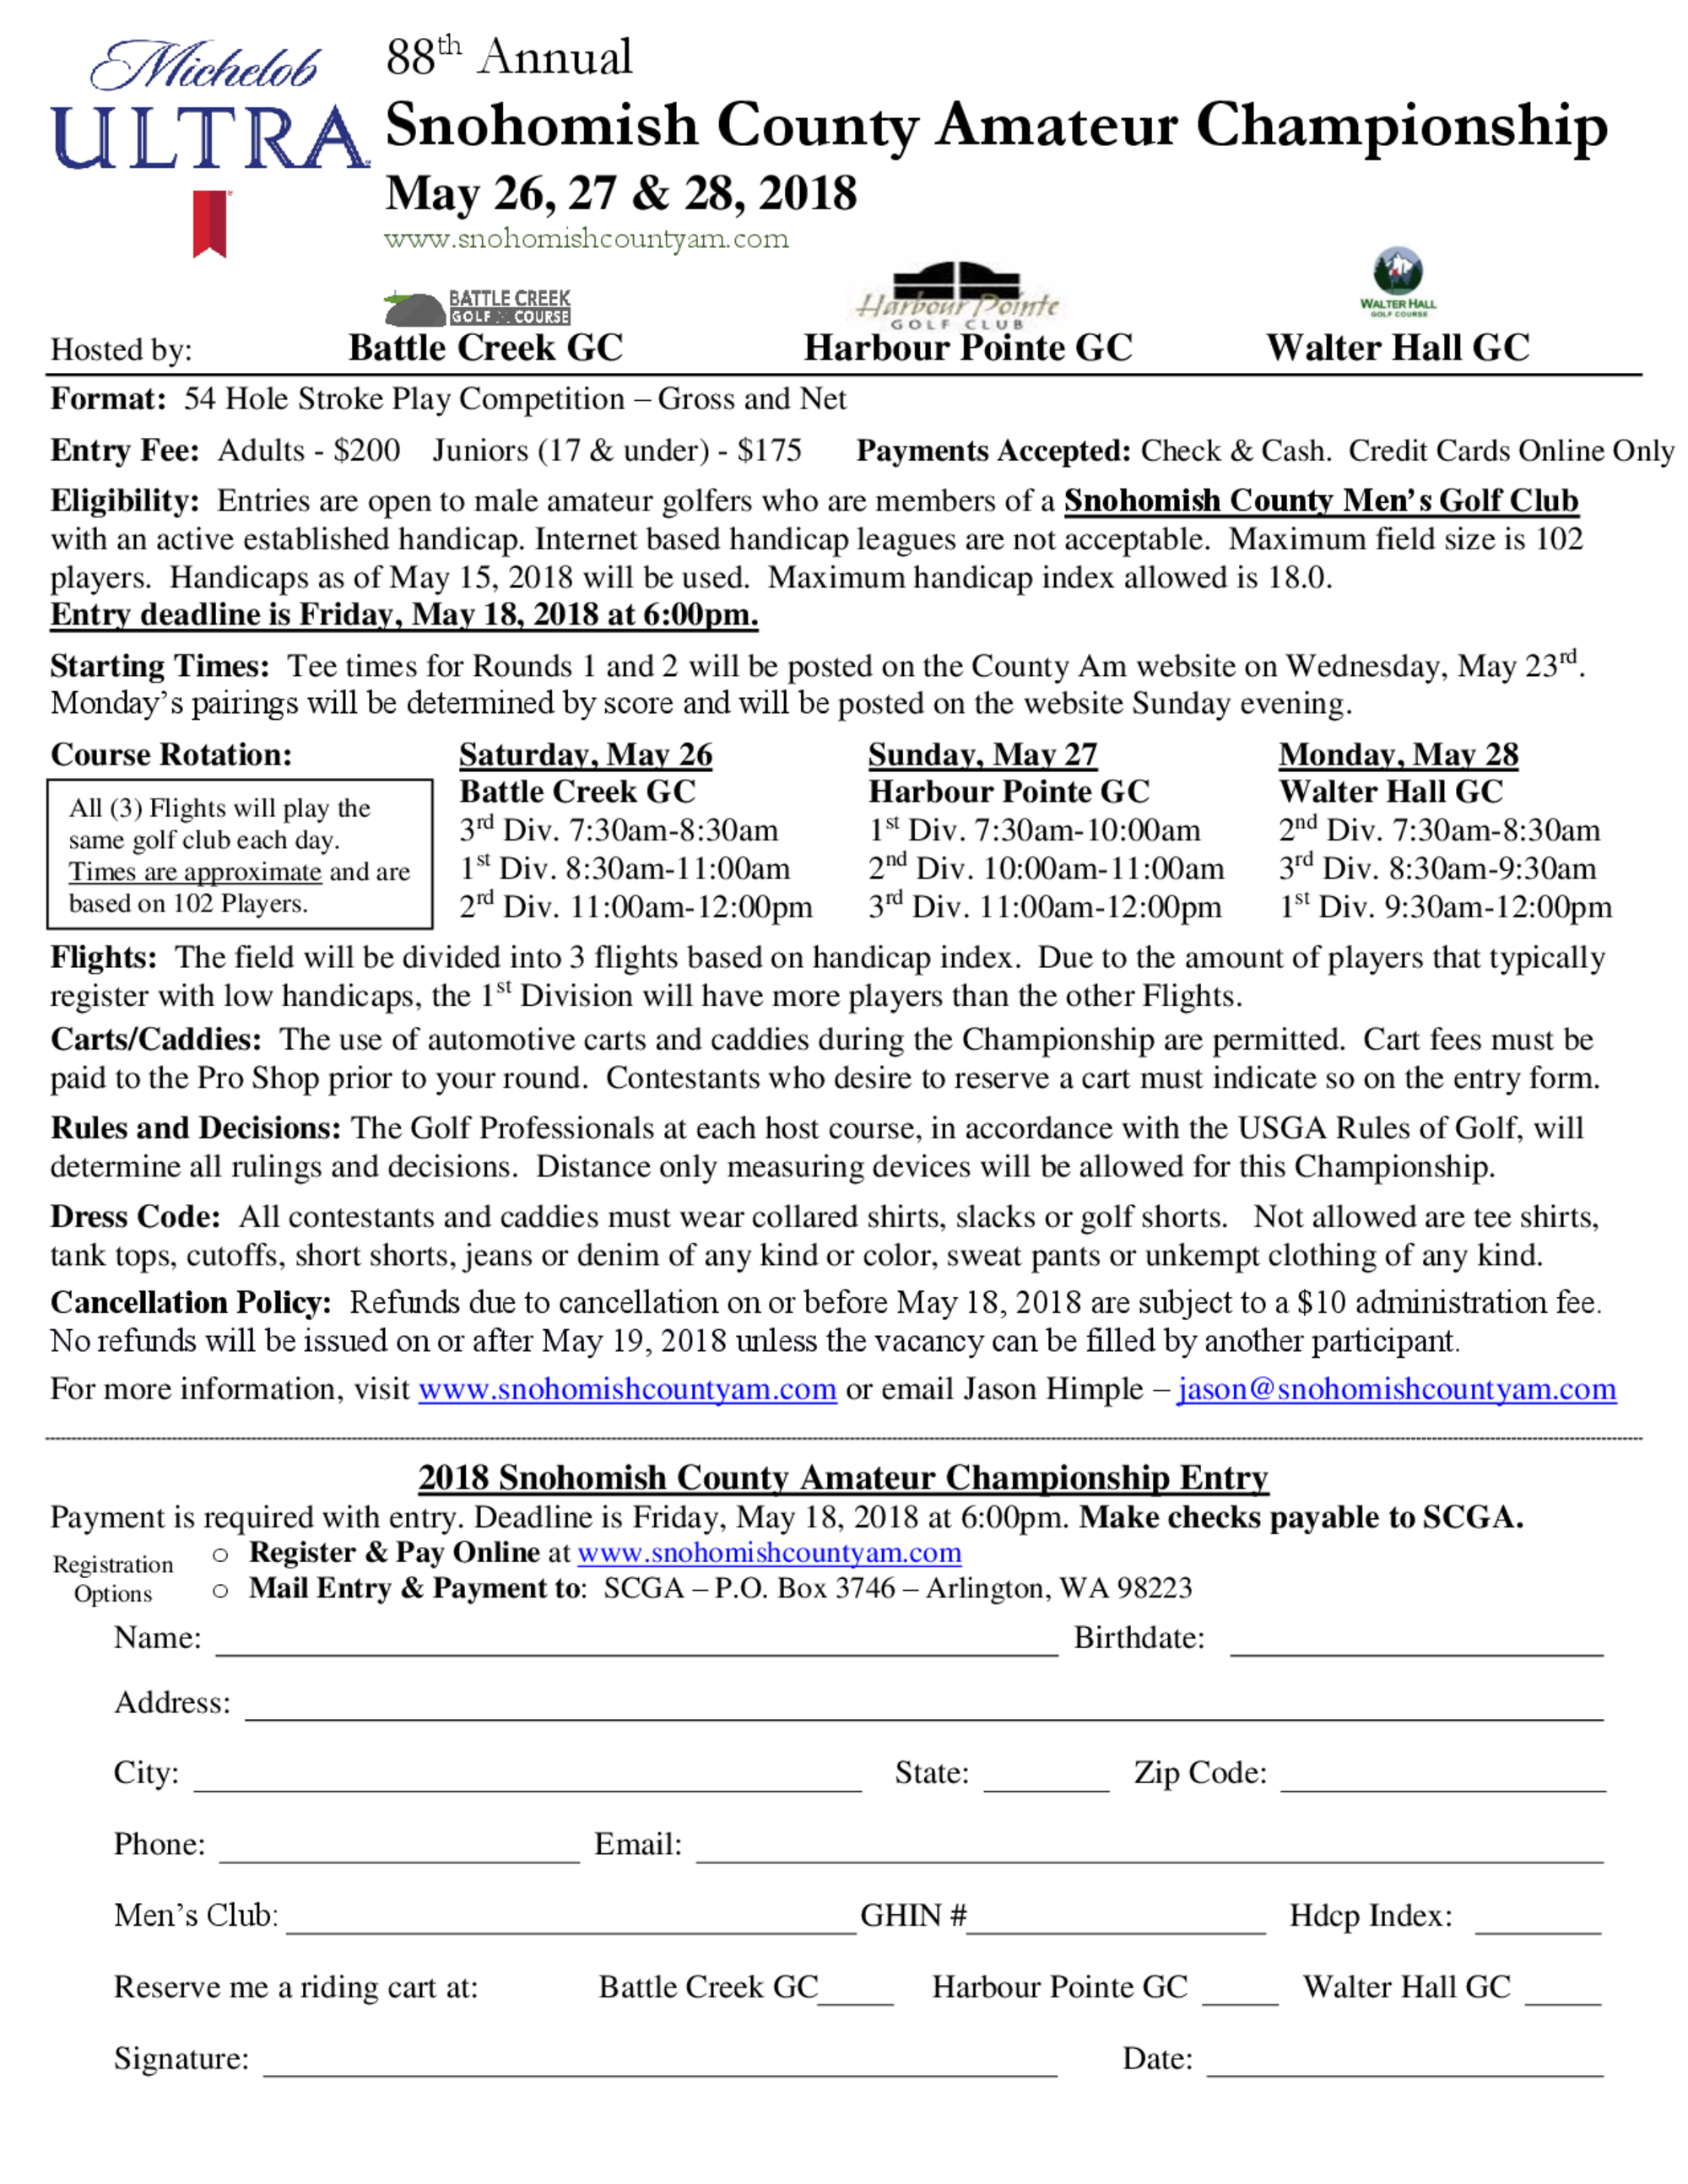 2018 sca entry form1 1